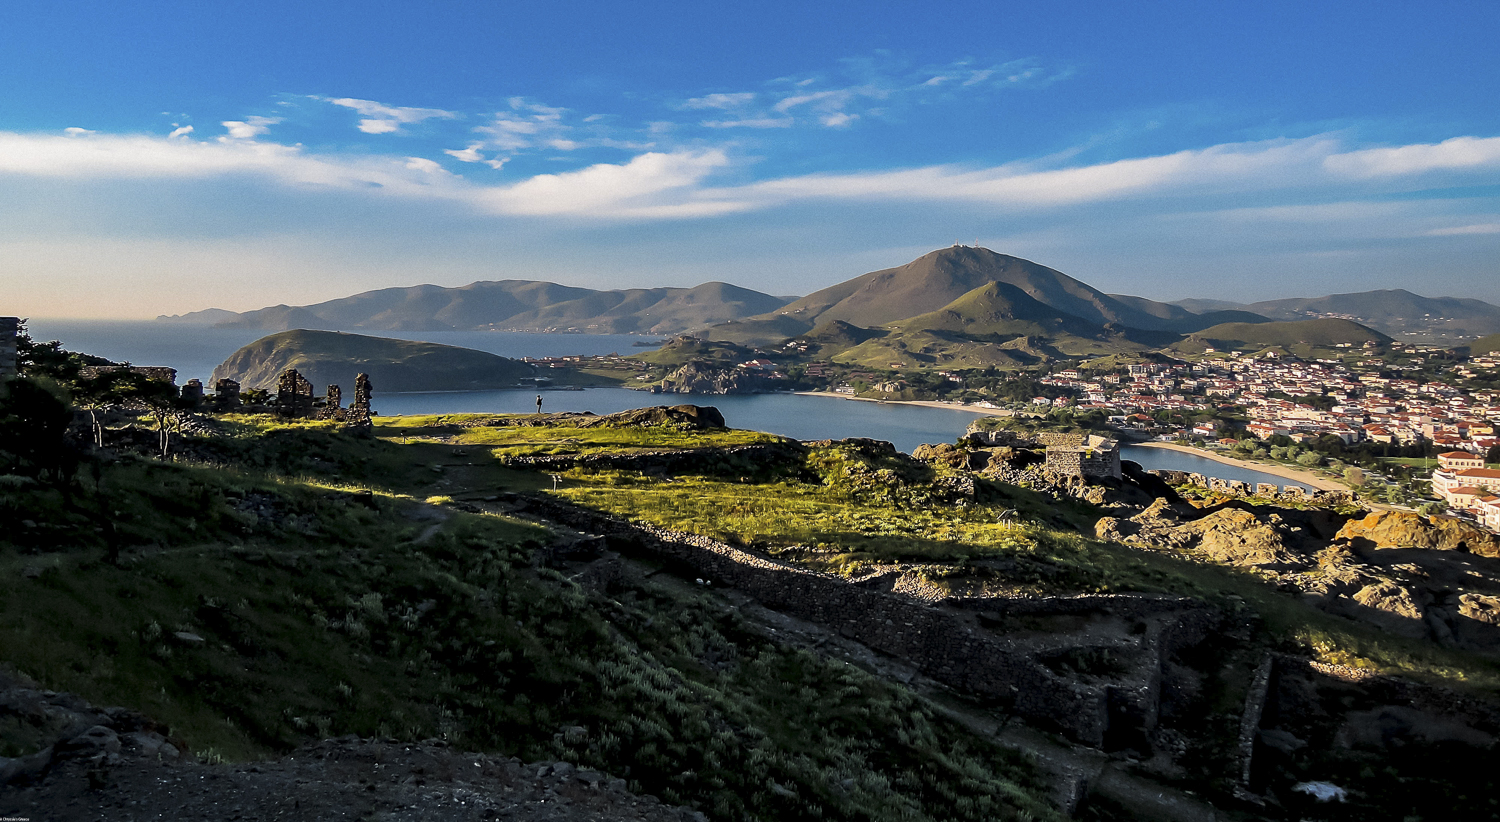 Lemnos, Greece photography workshop